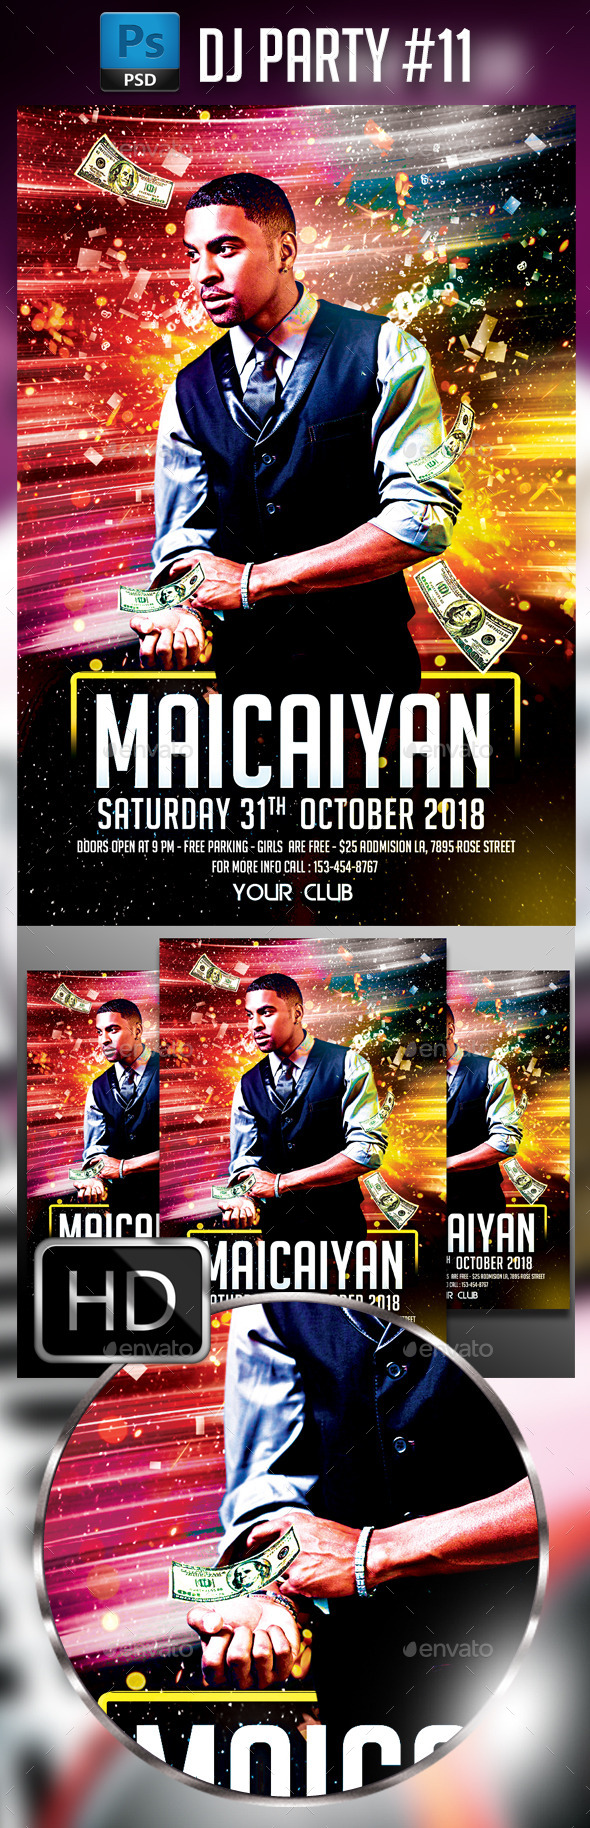 Dj Party #11 - Events Flyers